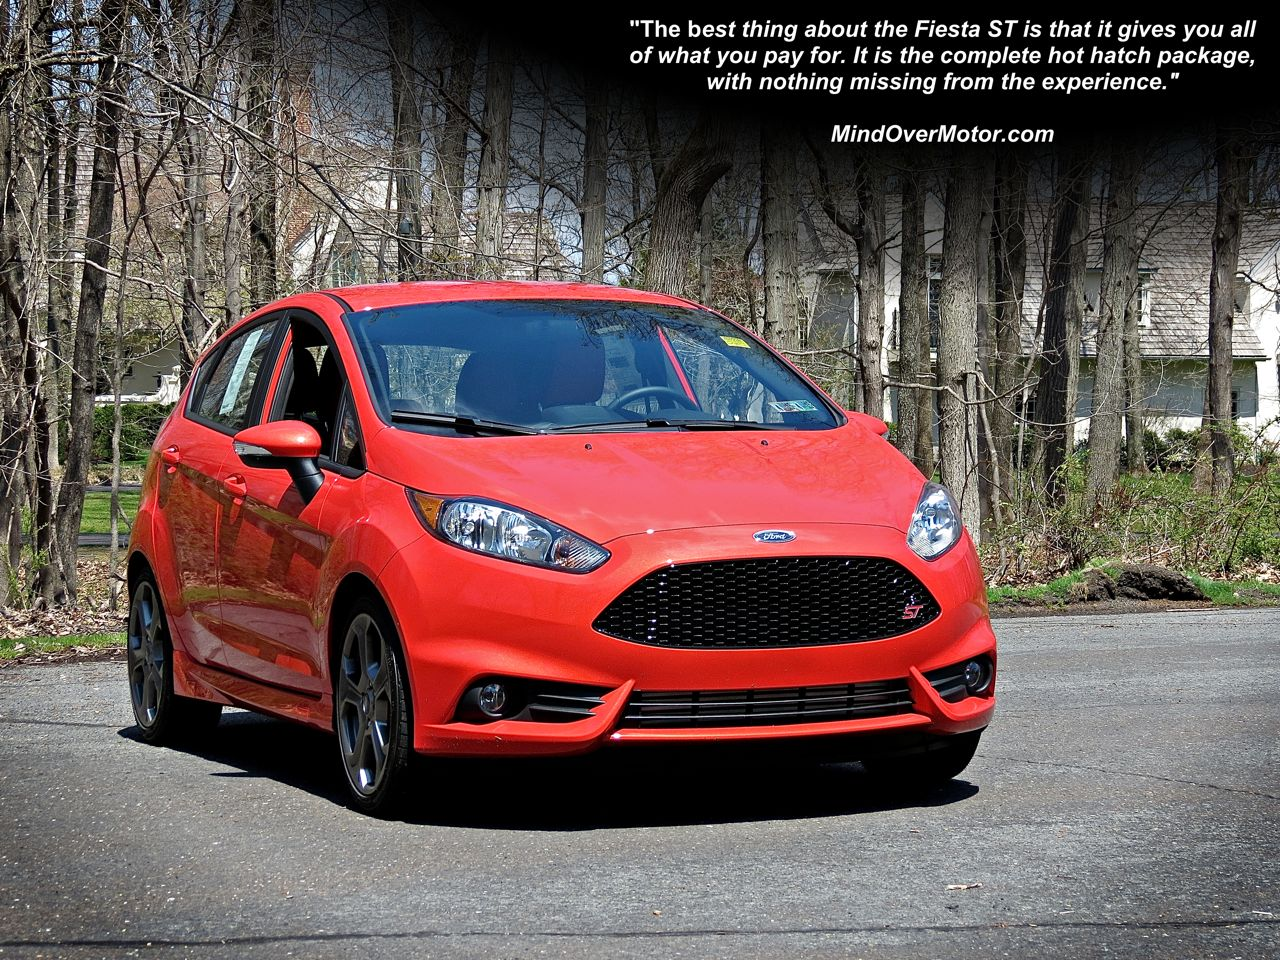 Ford Fiesta ST Reviewed by Mind Over Motor